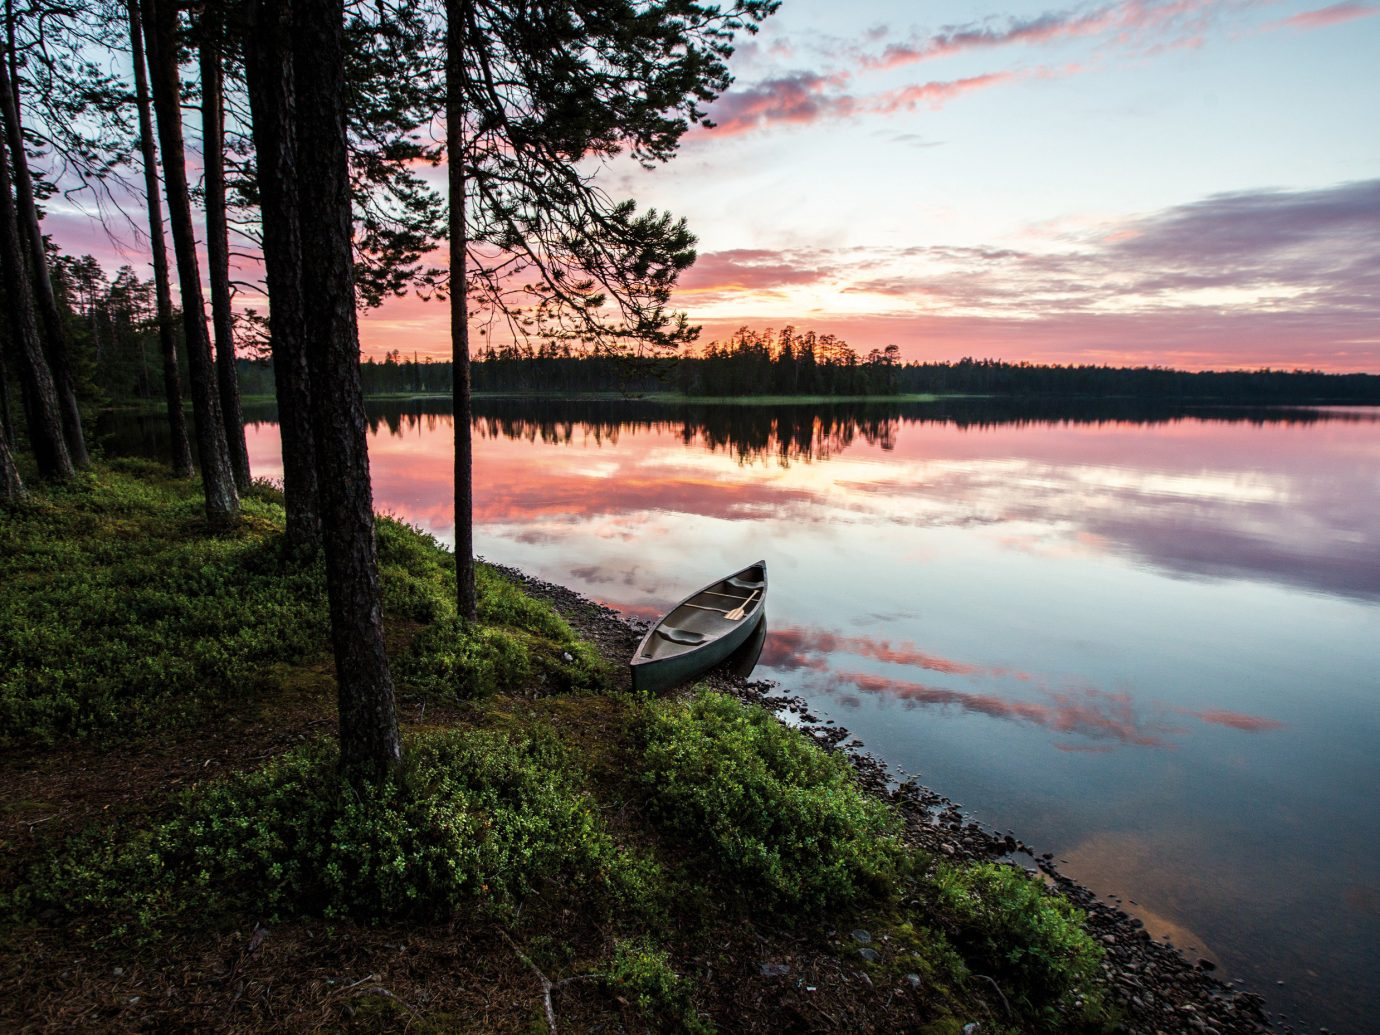 Travel Tips outdoor tree sky habitat Nature reflection atmospheric phenomenon wilderness water Lake River morning cloud Sunset shore sunrise loch dawn landscape evening dusk Sea reservoir wetland